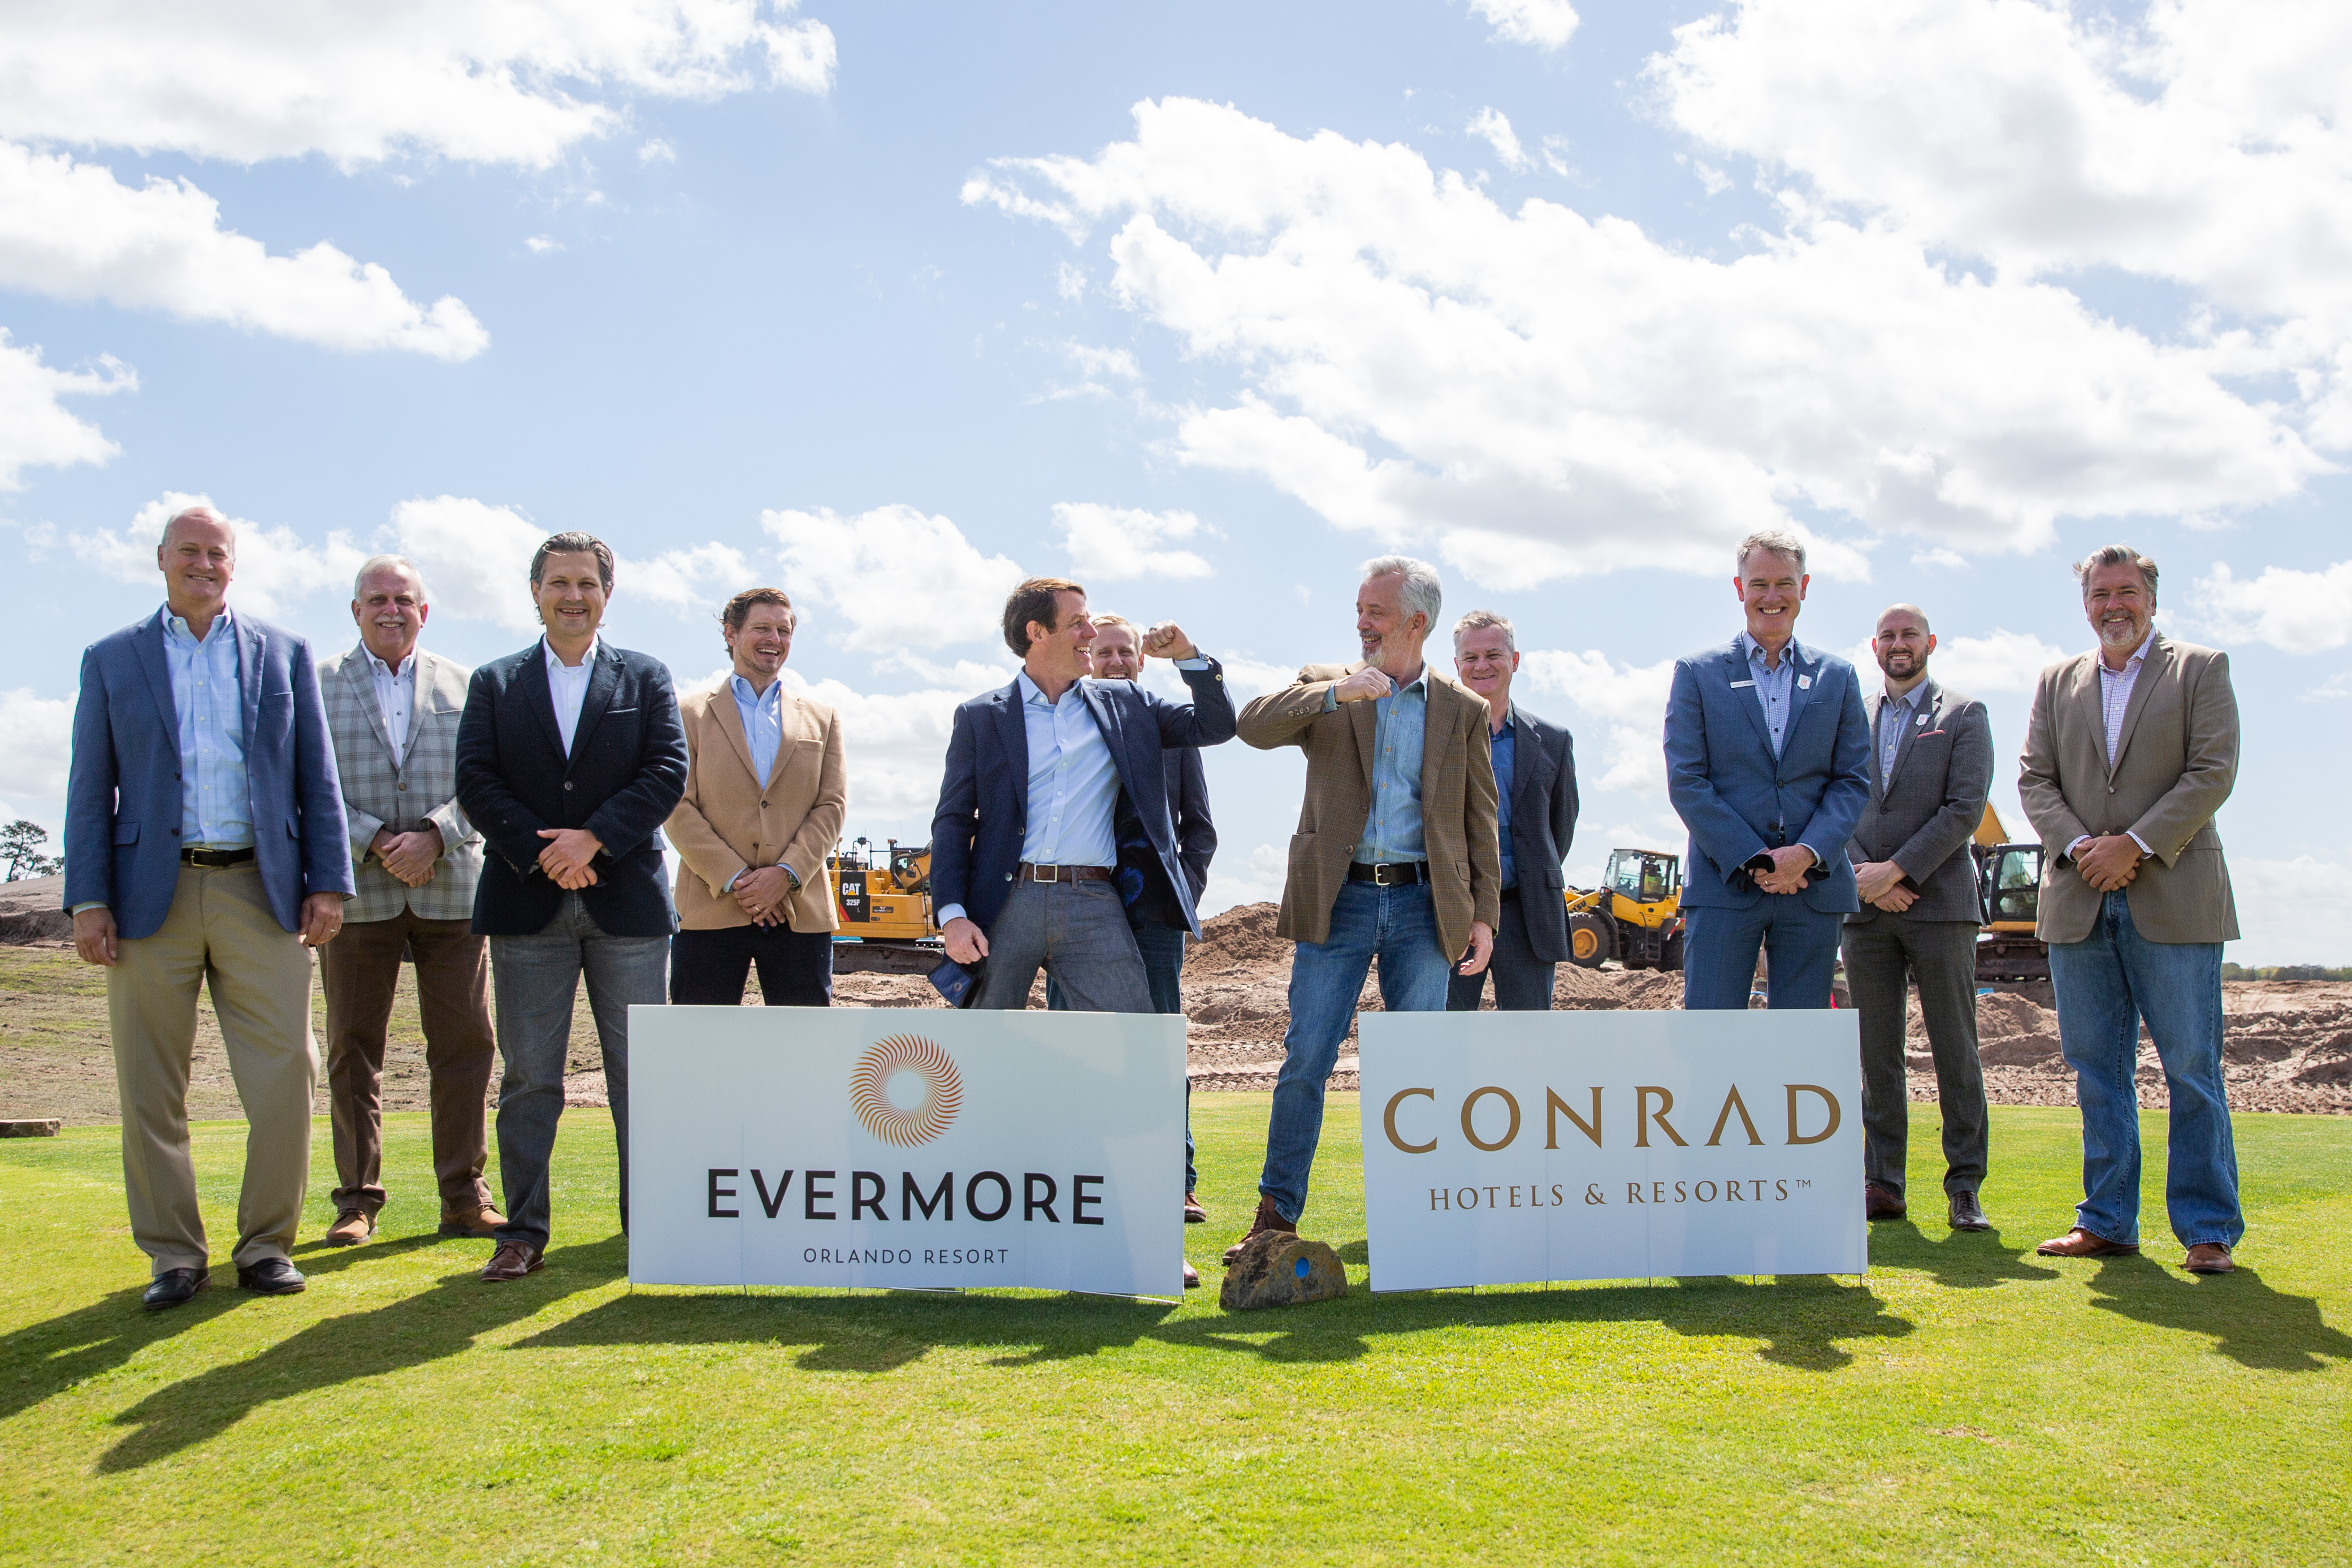 Ground breaking at the Conrad Orlando